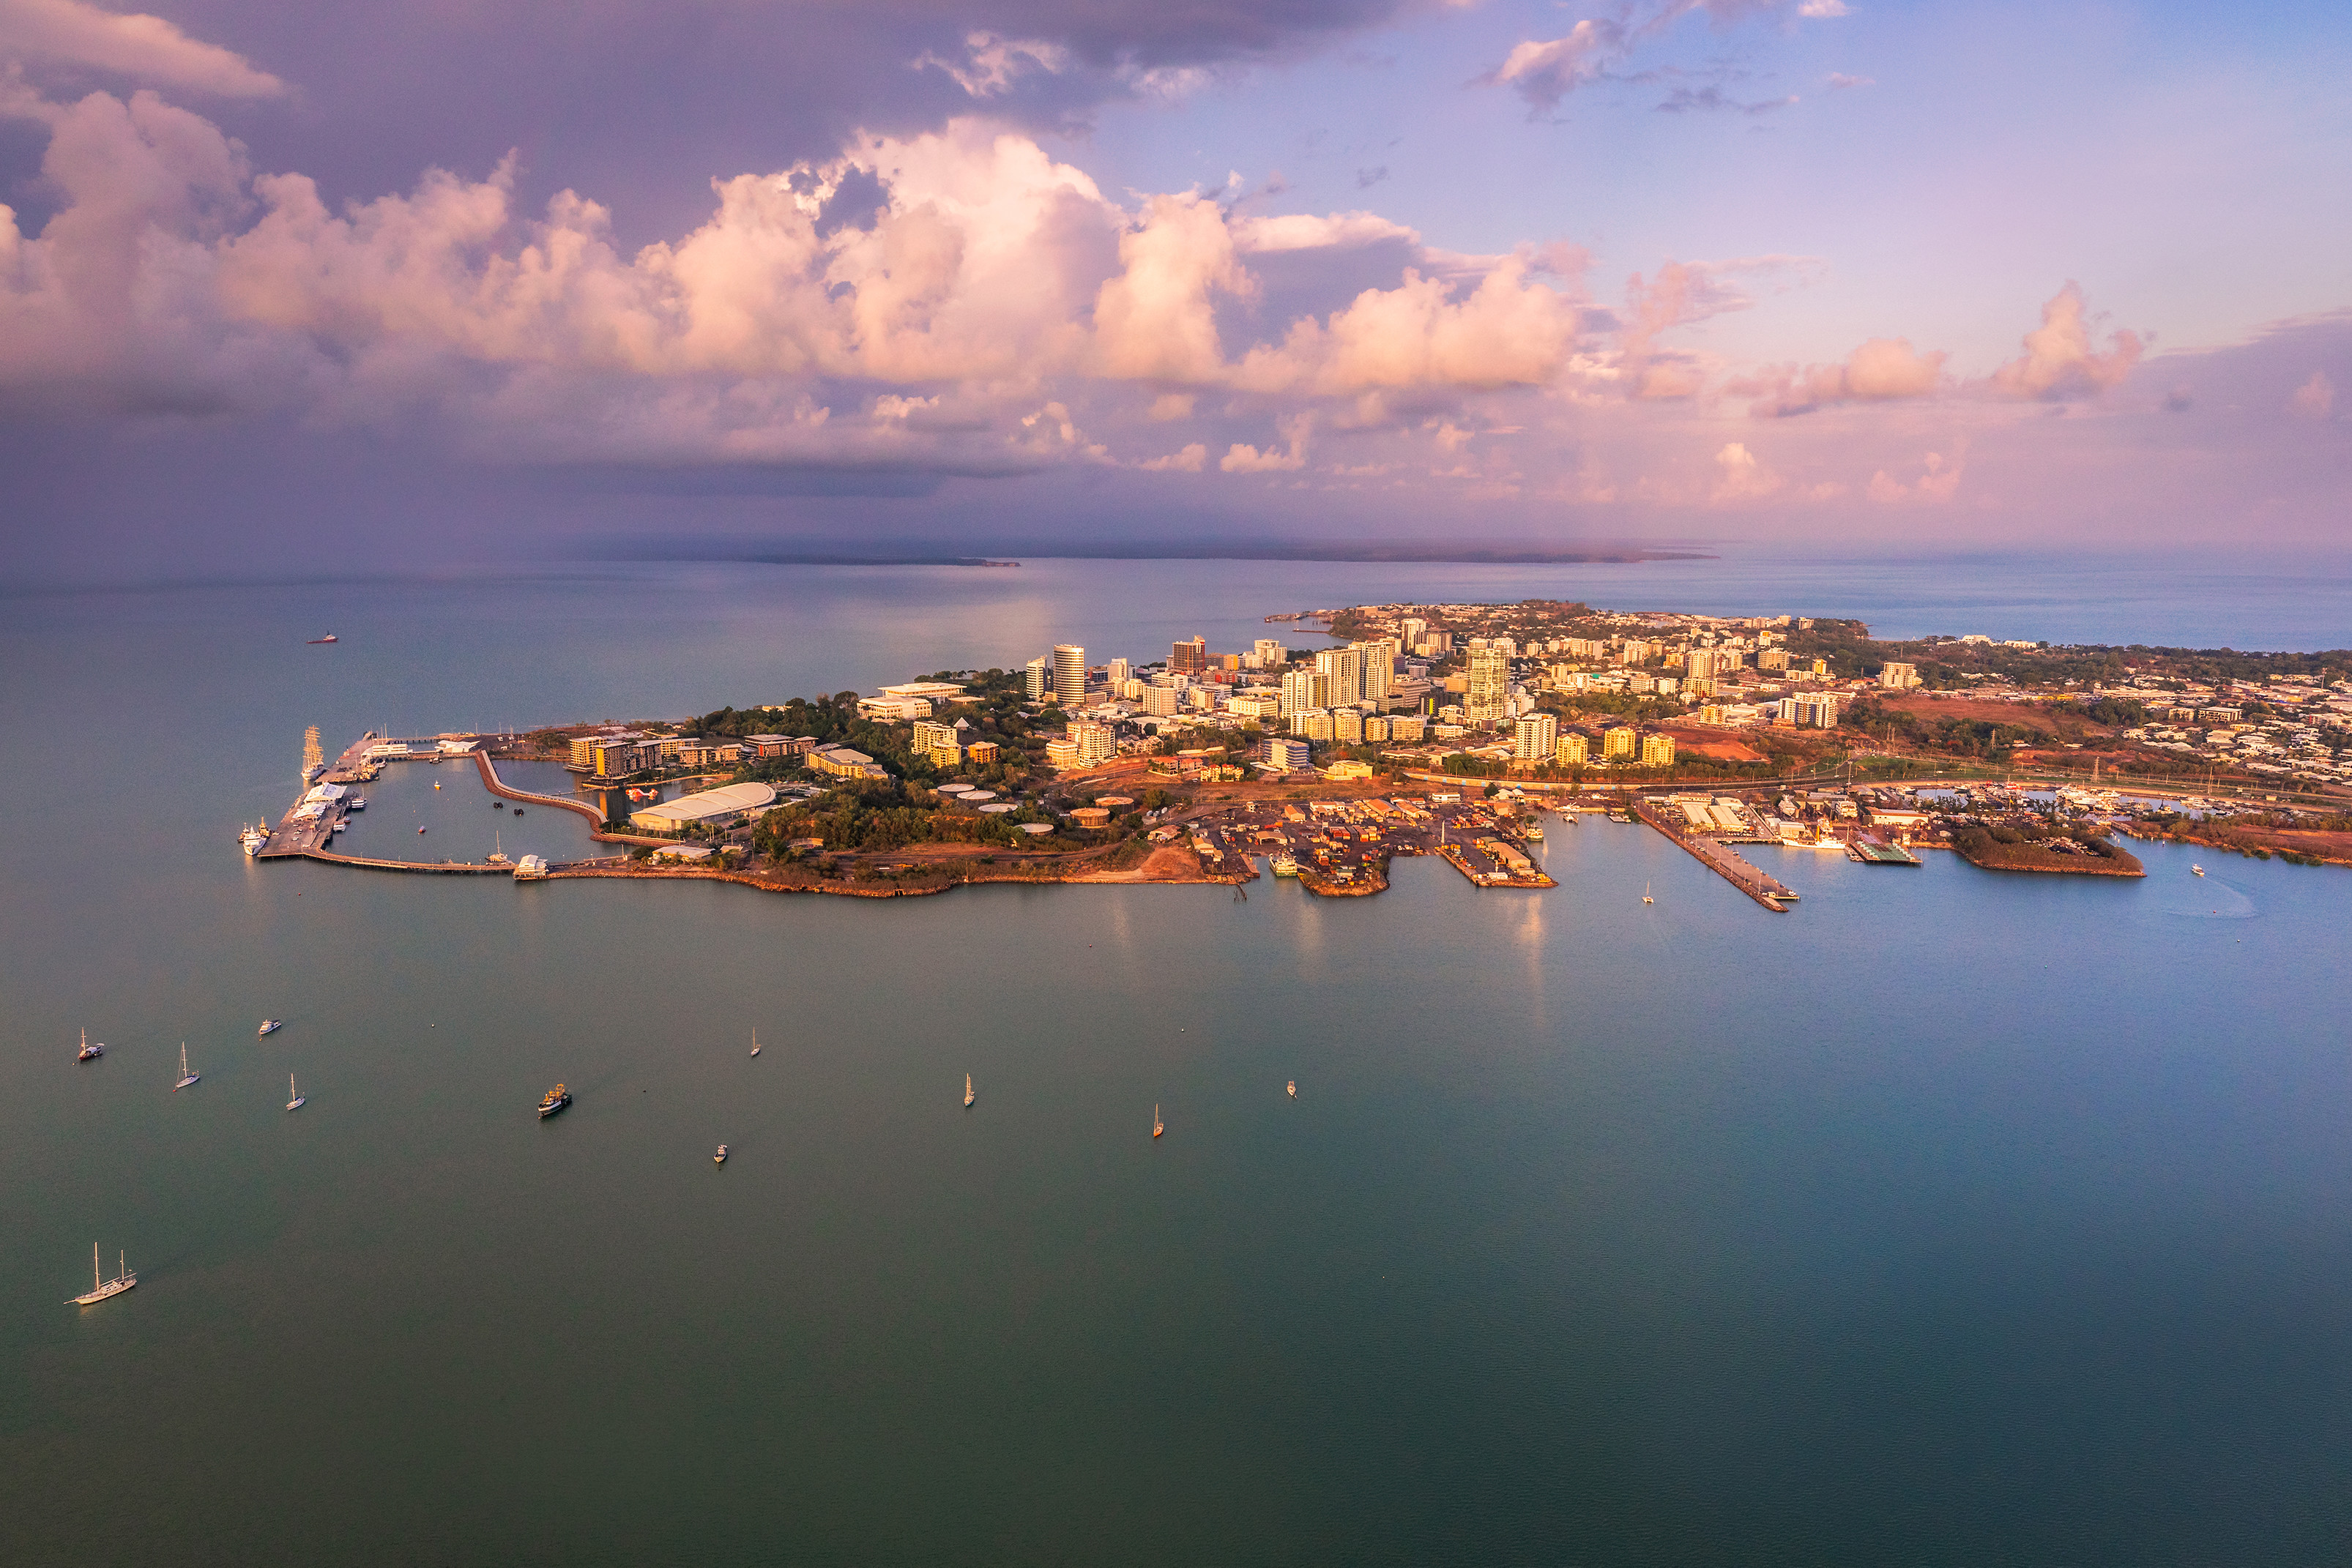 Support local and get out and about in Darwin – Sue's Top 5 City Breaks